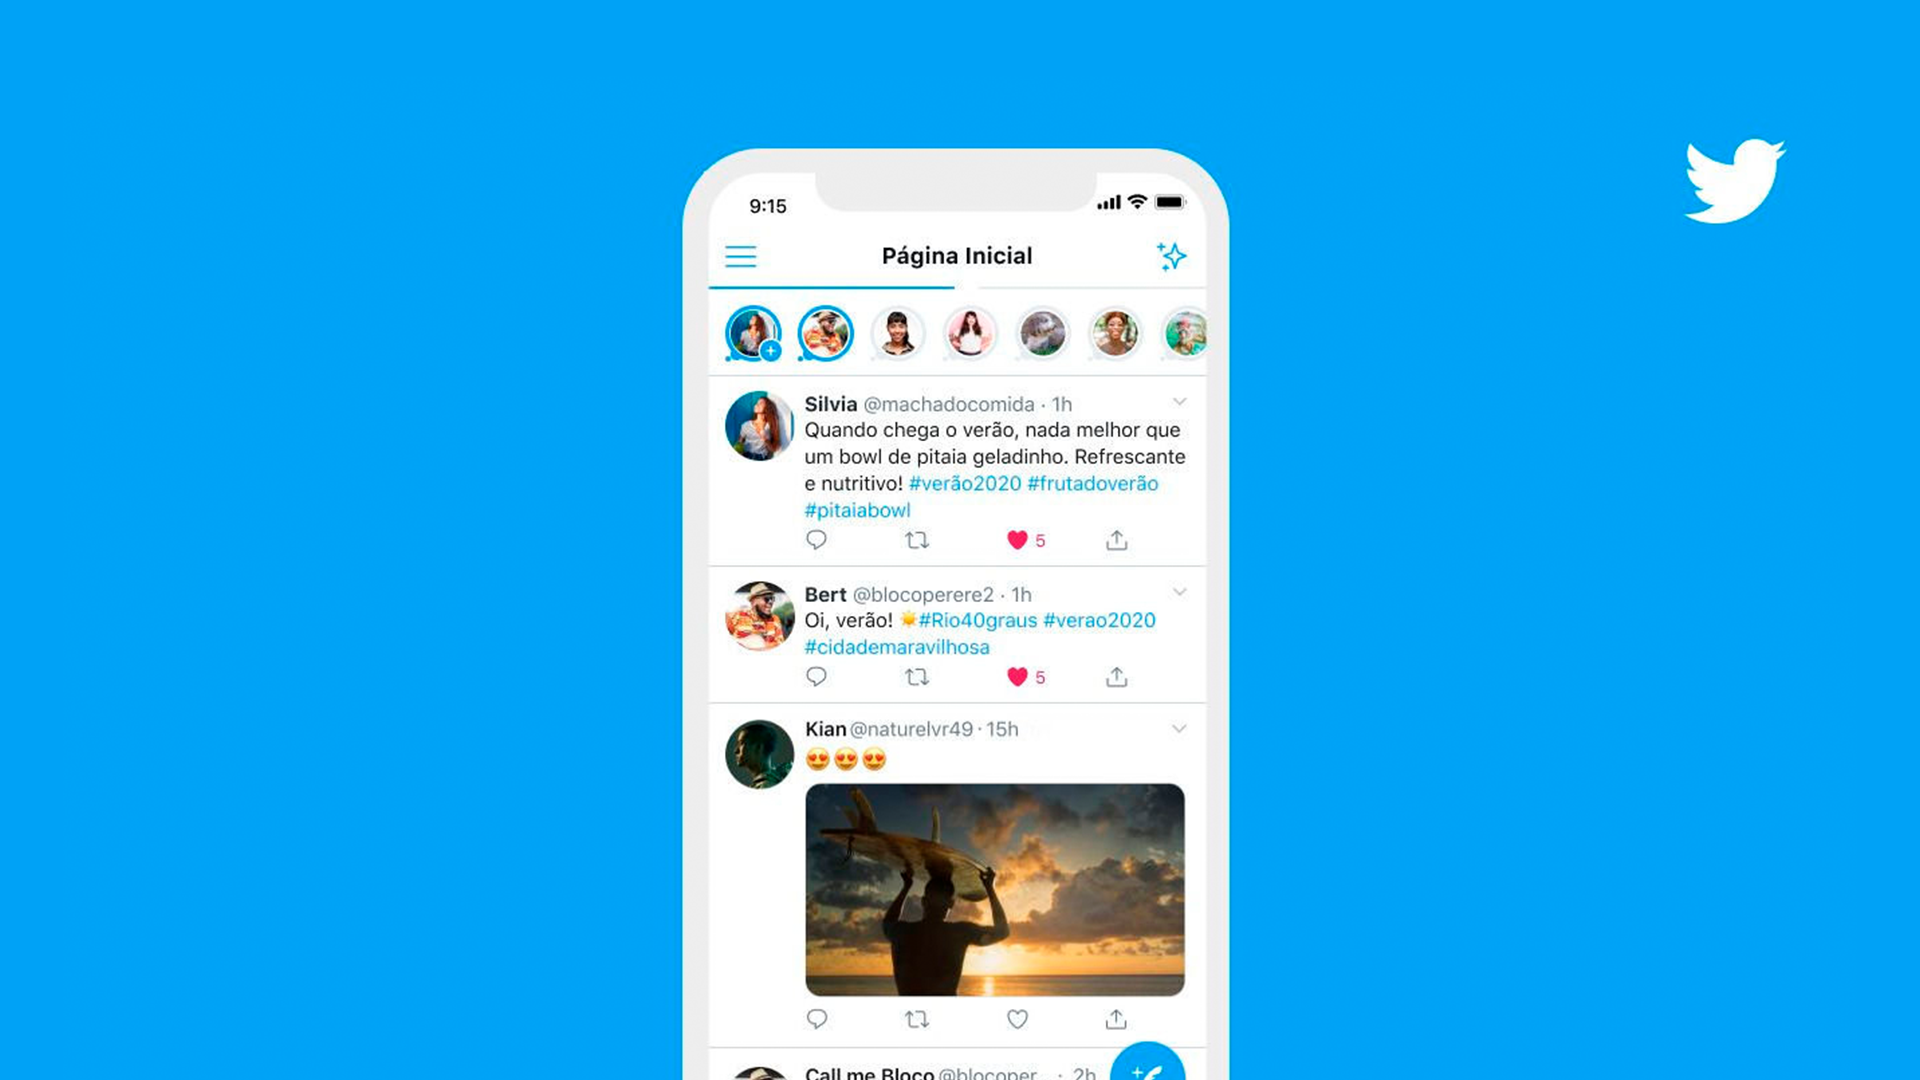 Twitter testing Instagram Stories-like 'Fleet' feature for deleting tweets after 24 hours - 9to5Mac